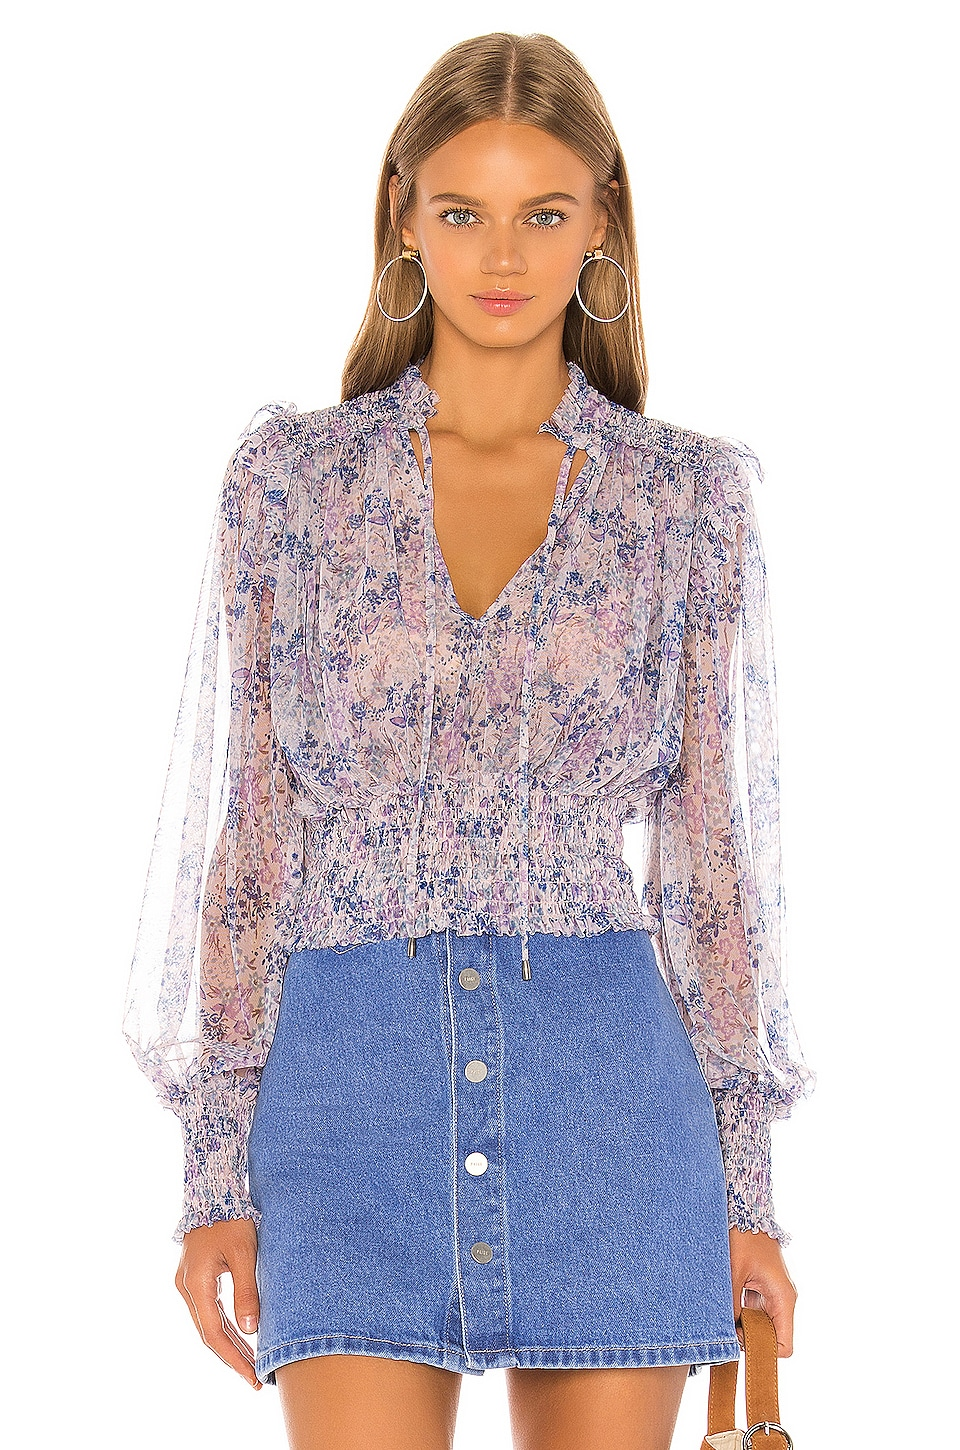 Free People Printed Twyla Top in Lilac